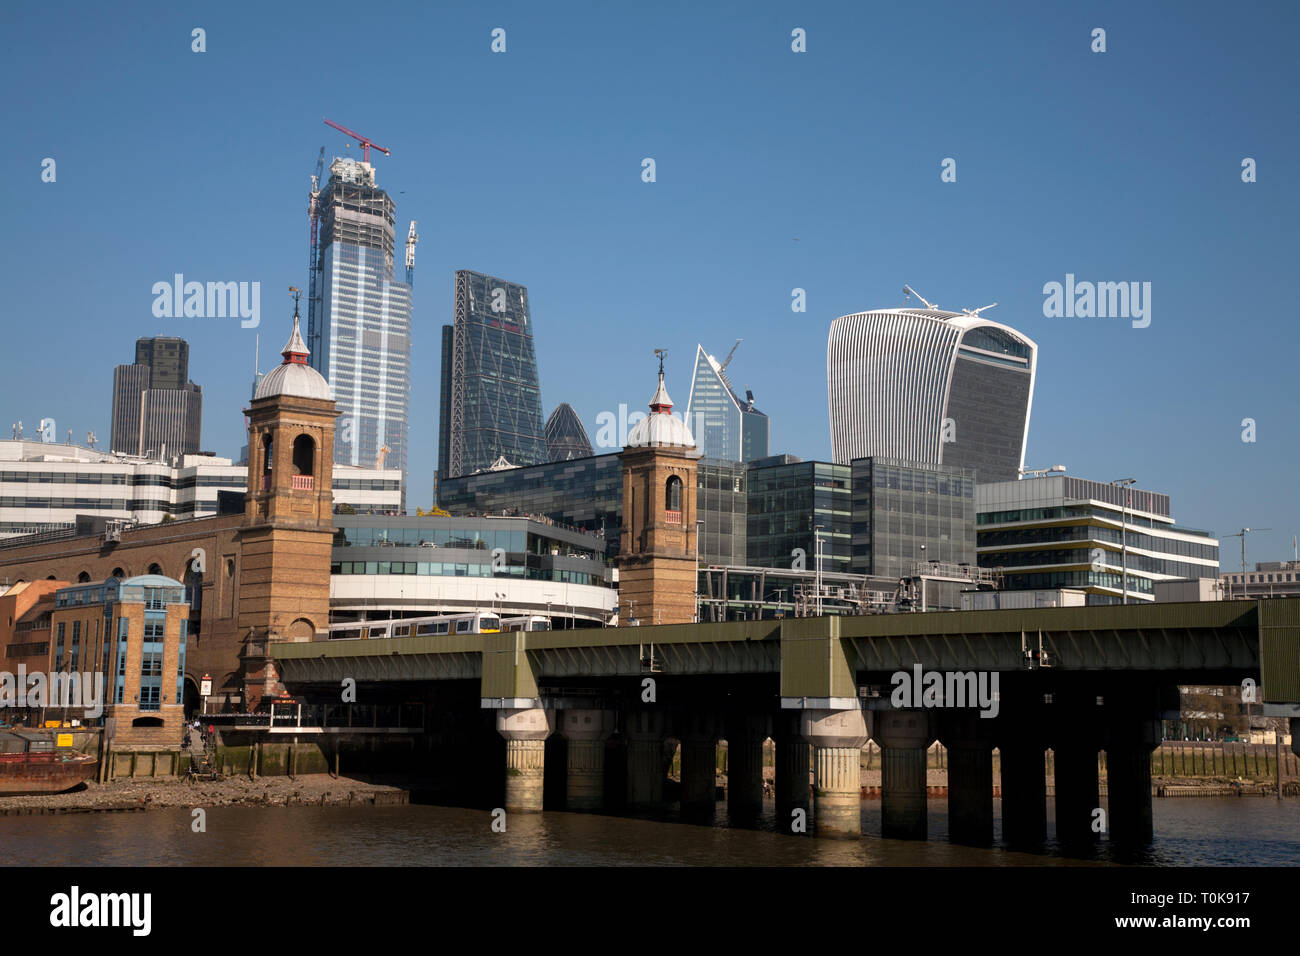 cannon street station and bridge and city of london skyscrapers london england - Stock Image